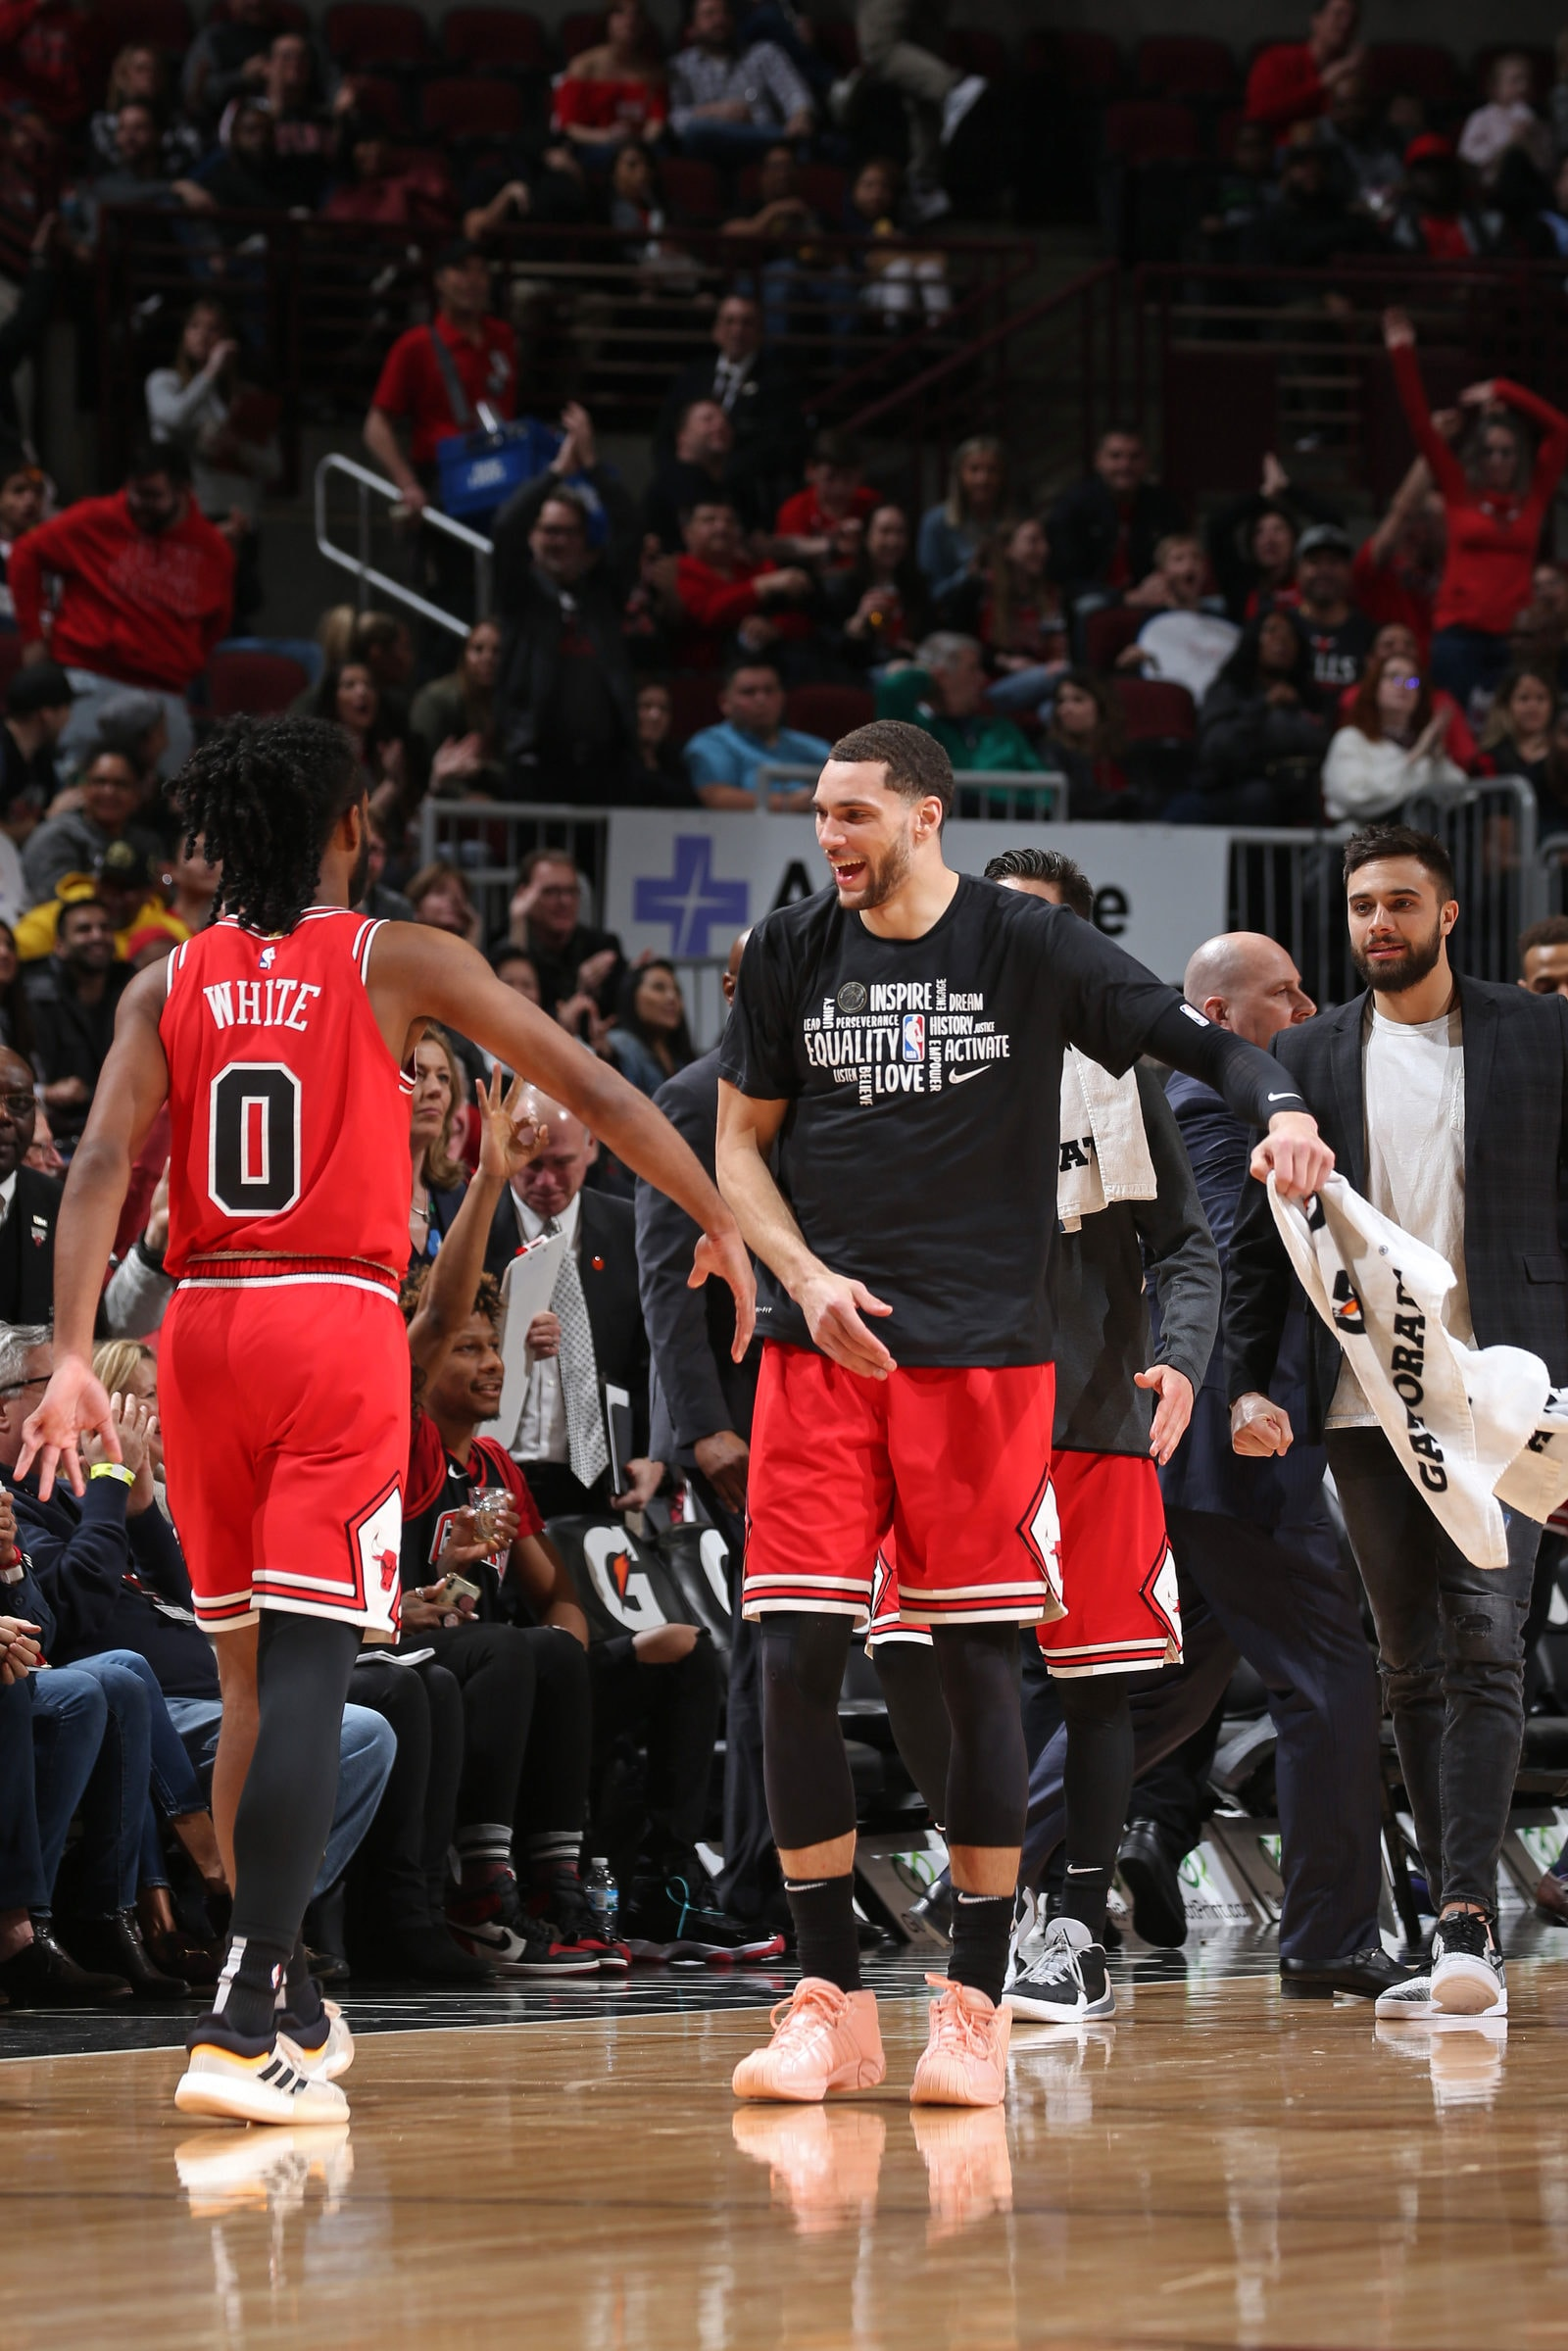 Coby White #0, and Zach LaVine #8 of the Chicago Bulls react to a play during the game against the Washington Wizards on February 23, 2020 at the United Center in Chicago, Illinois.